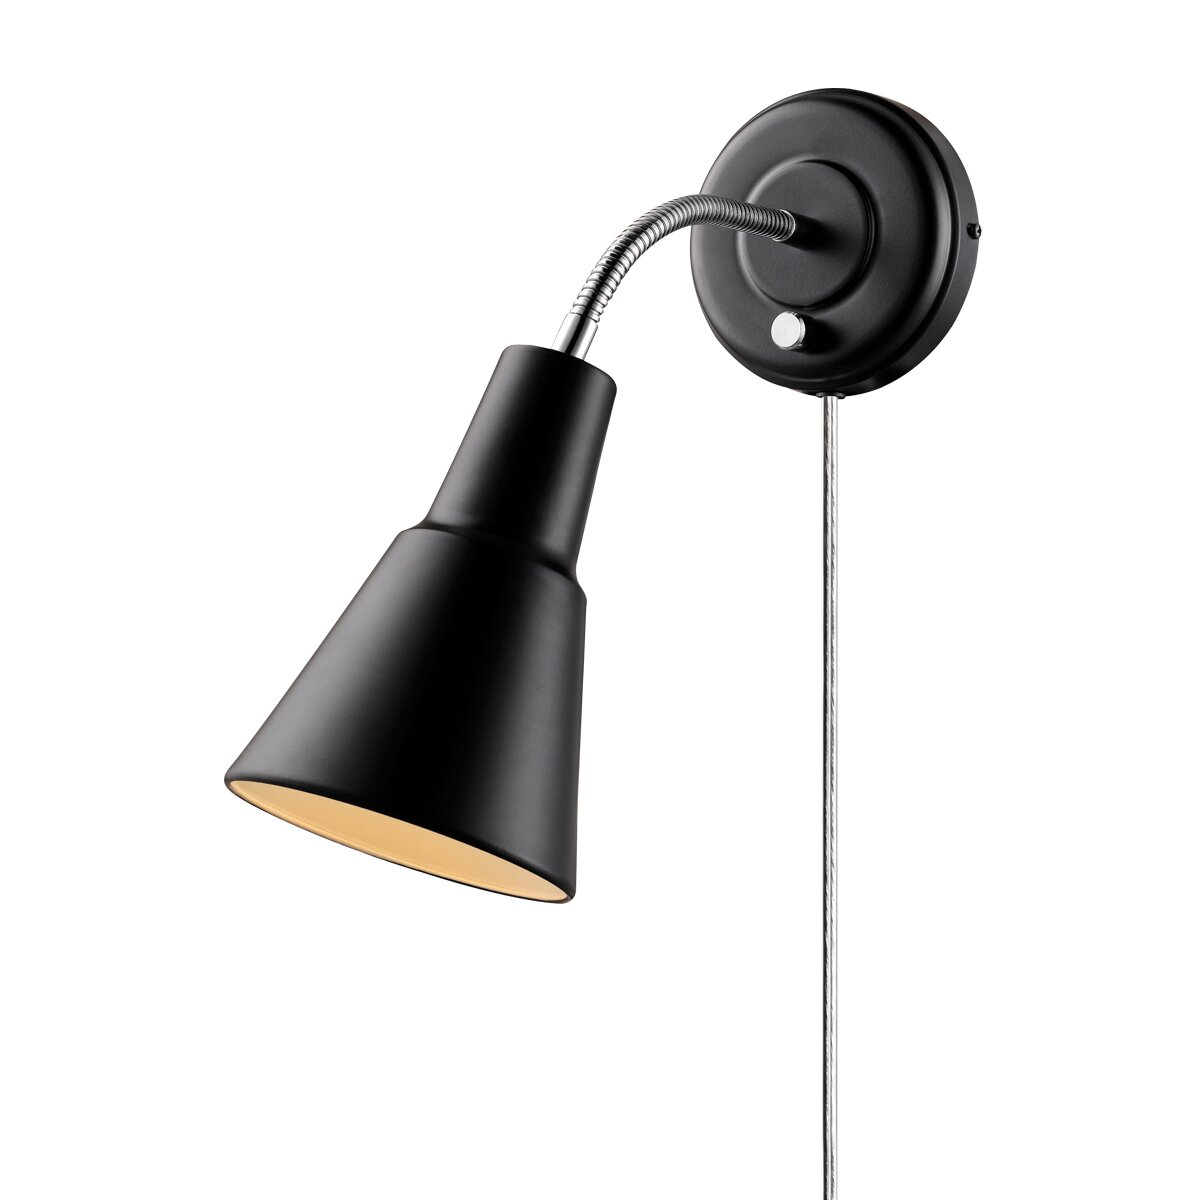 Wall Sconce Task Light : 1 Light Plug In Task Wall Sconce with Hardwire Conversion Kit Wayfair